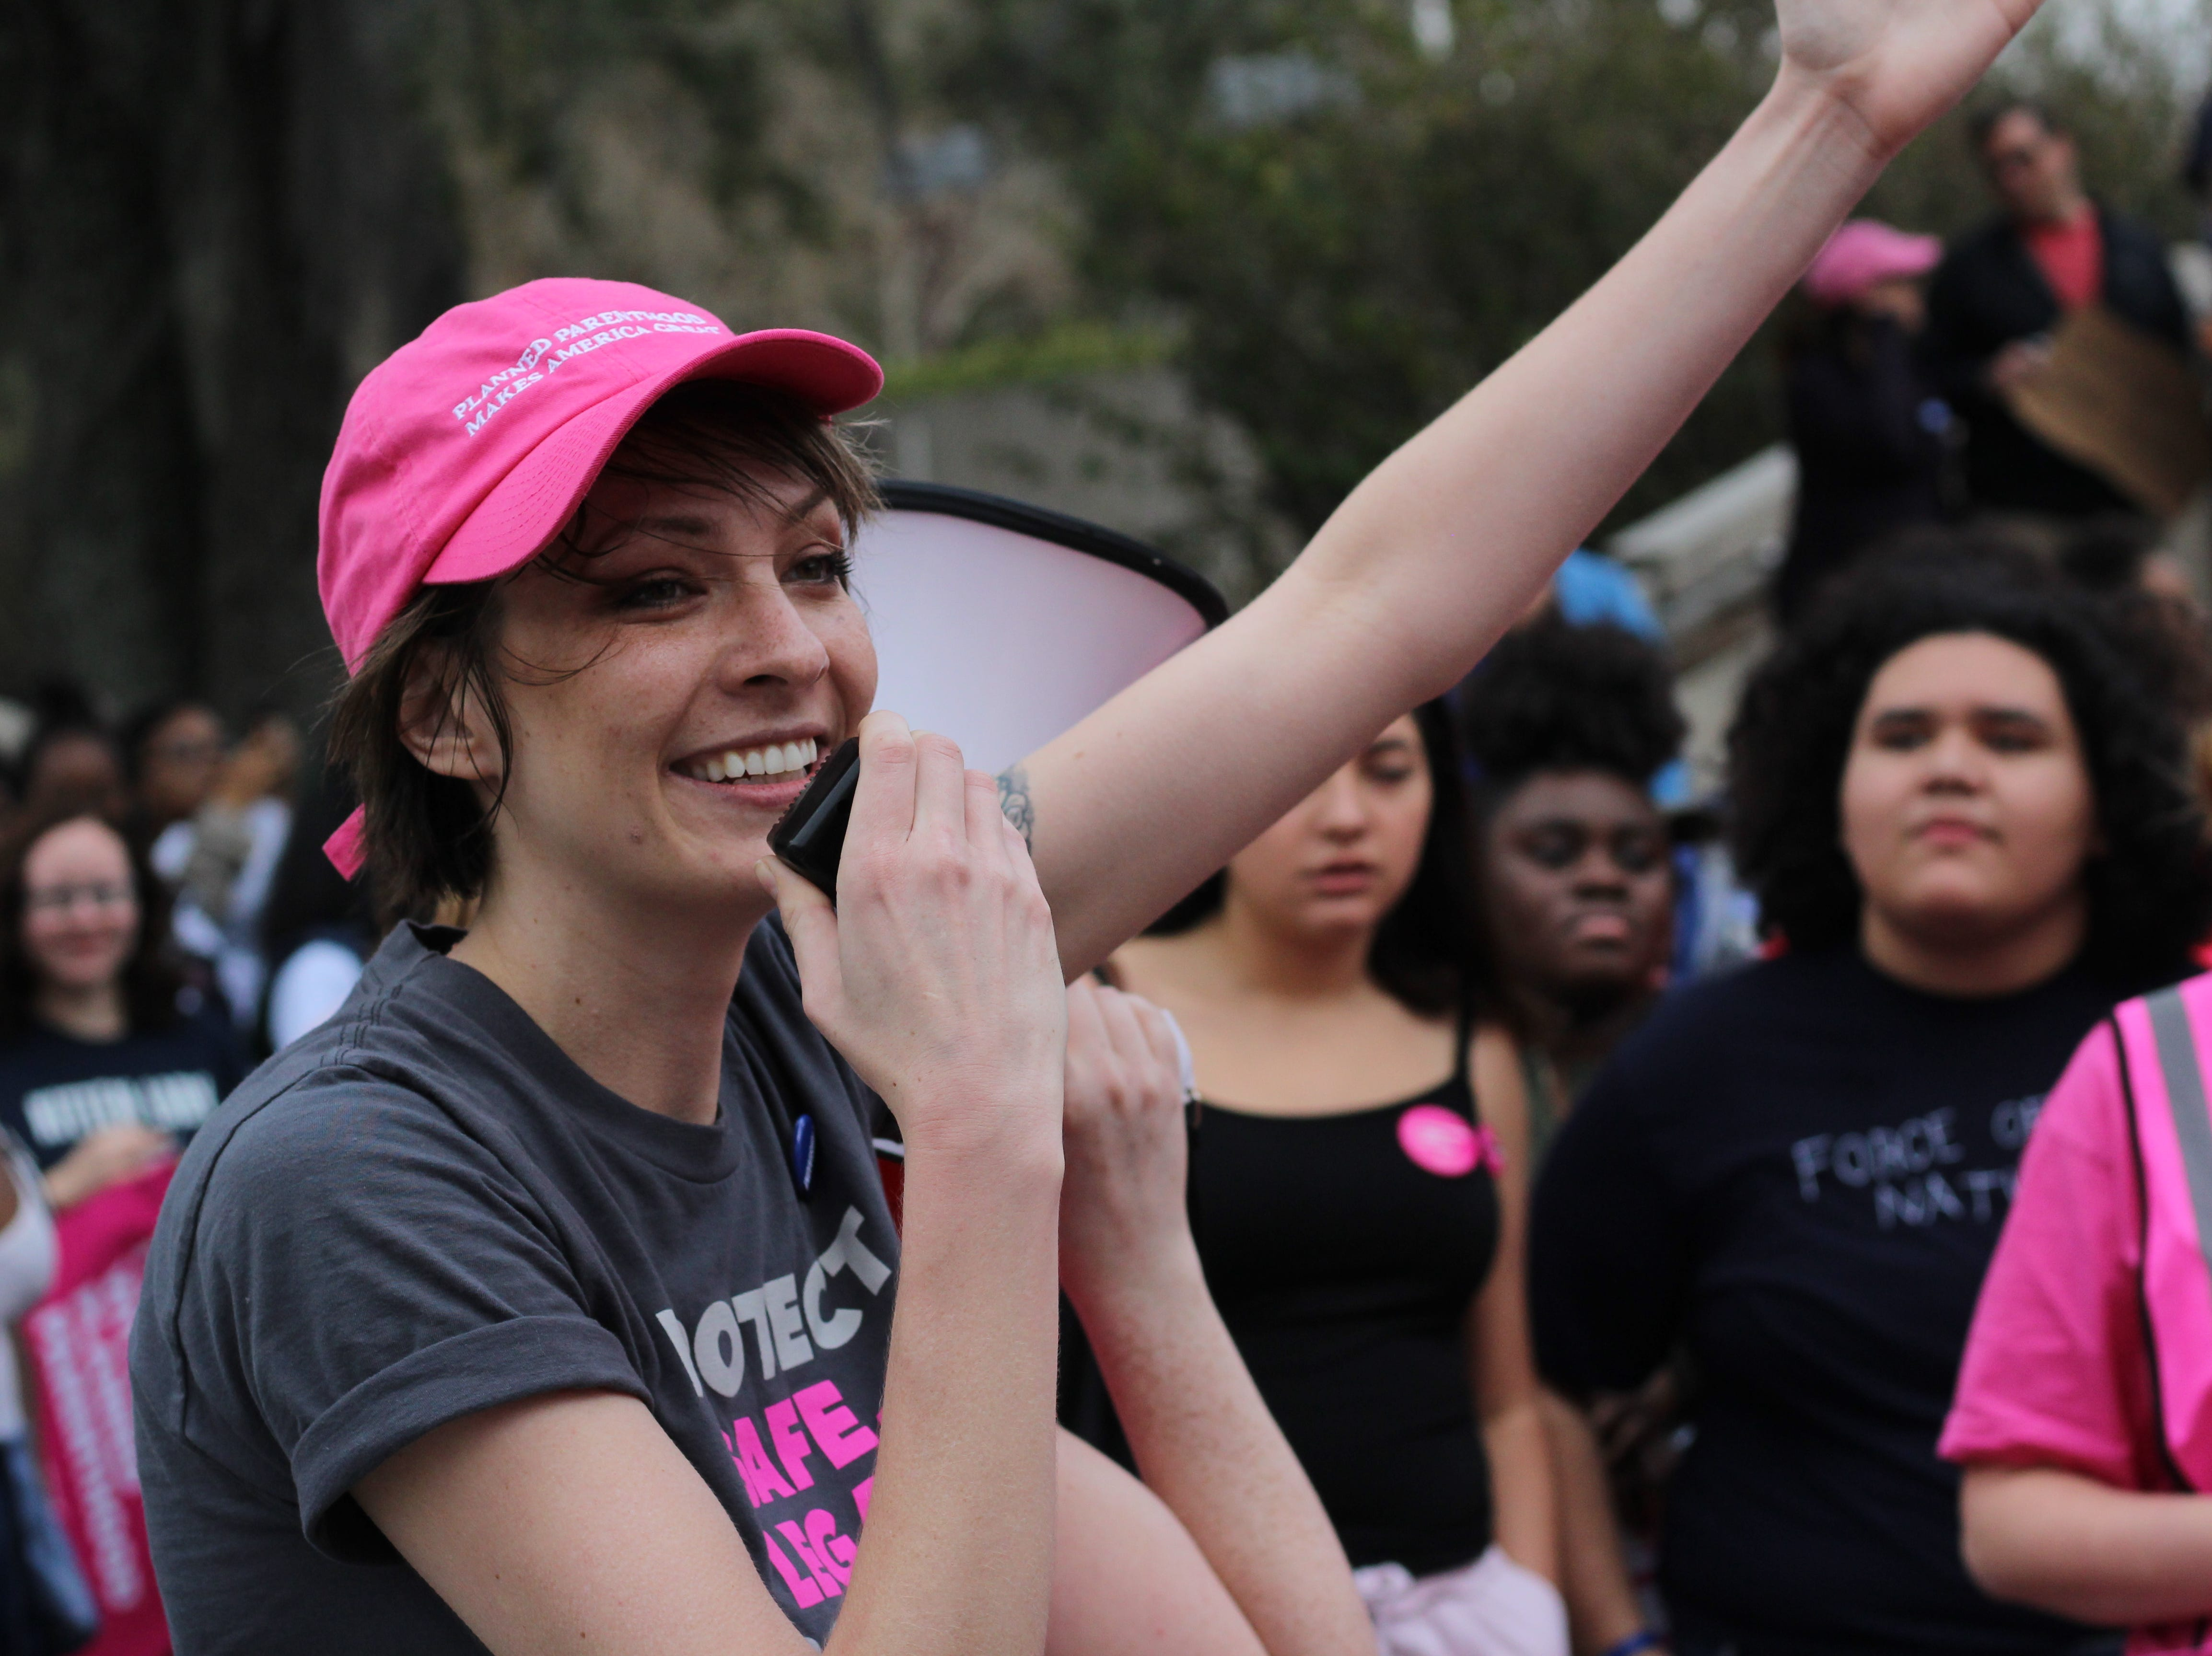 Community members gather for Tallahassee's Women's March to advocate for women's rights.